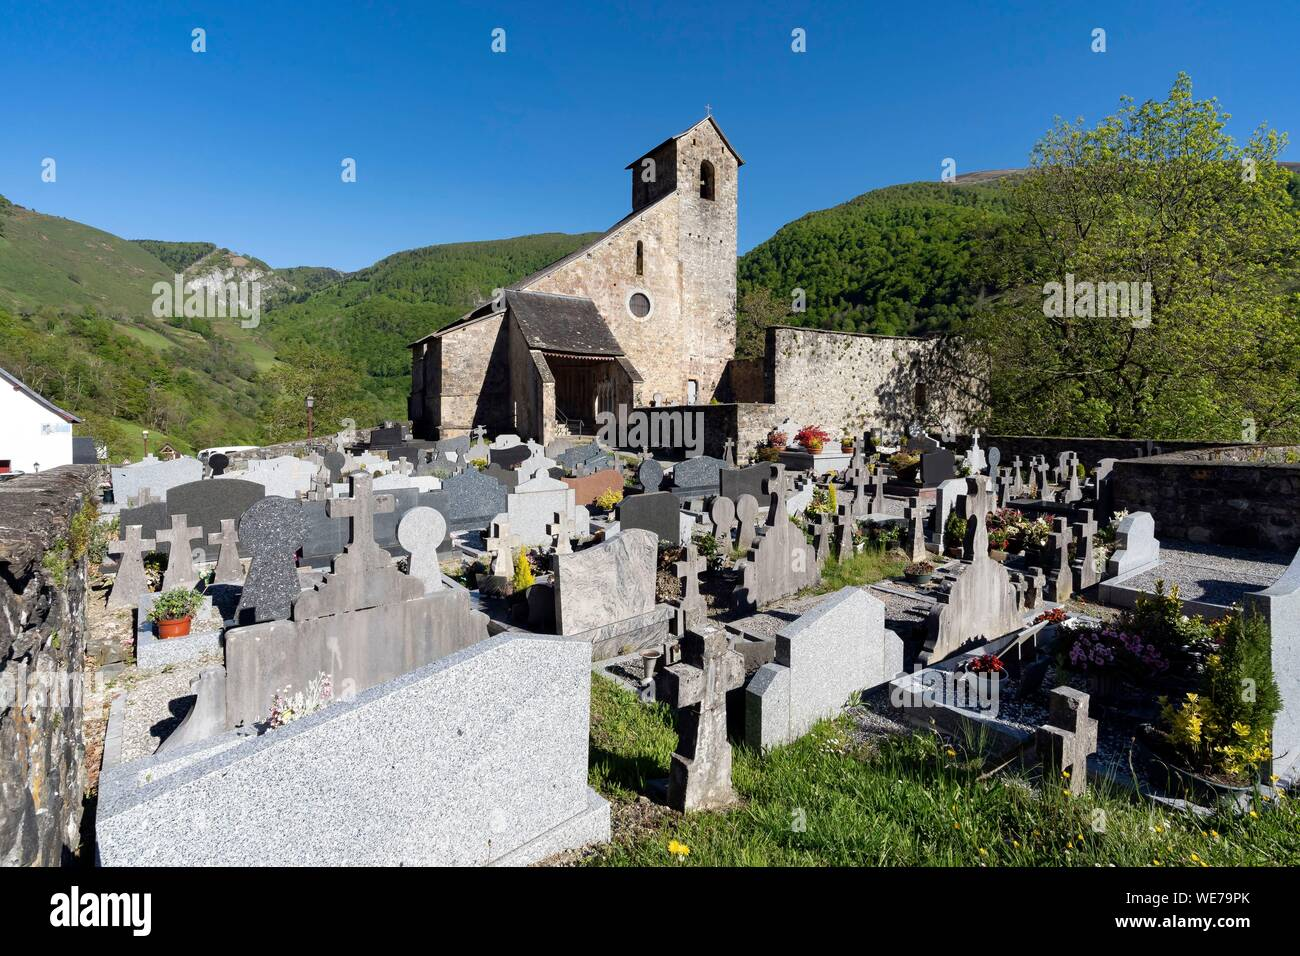 France, Pyrenees Atlantiques, Basque country, Haute Soule valley, Sainte Engrace, the Romanesque church of the same name, founded in 1085 by the abbey of Leyre in Navarre Stock Photo